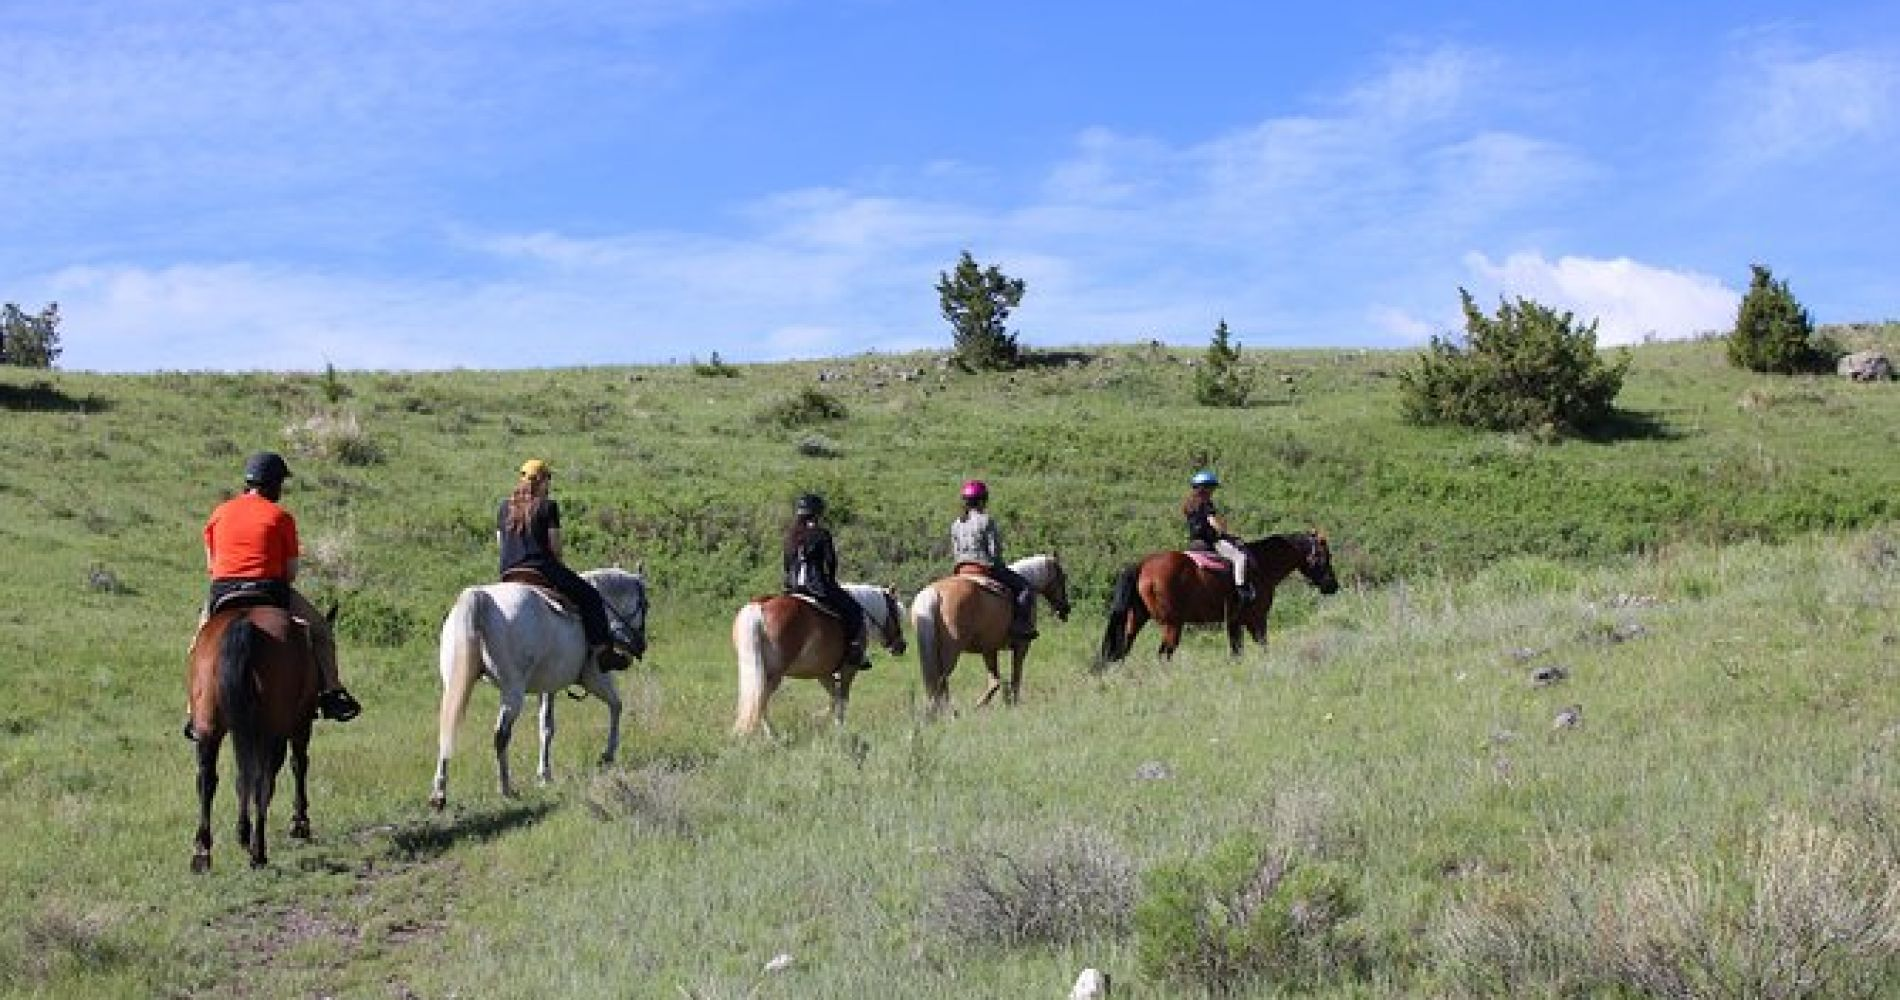 Erik's Ranch Property Trail Ride on the Countryside of Montana